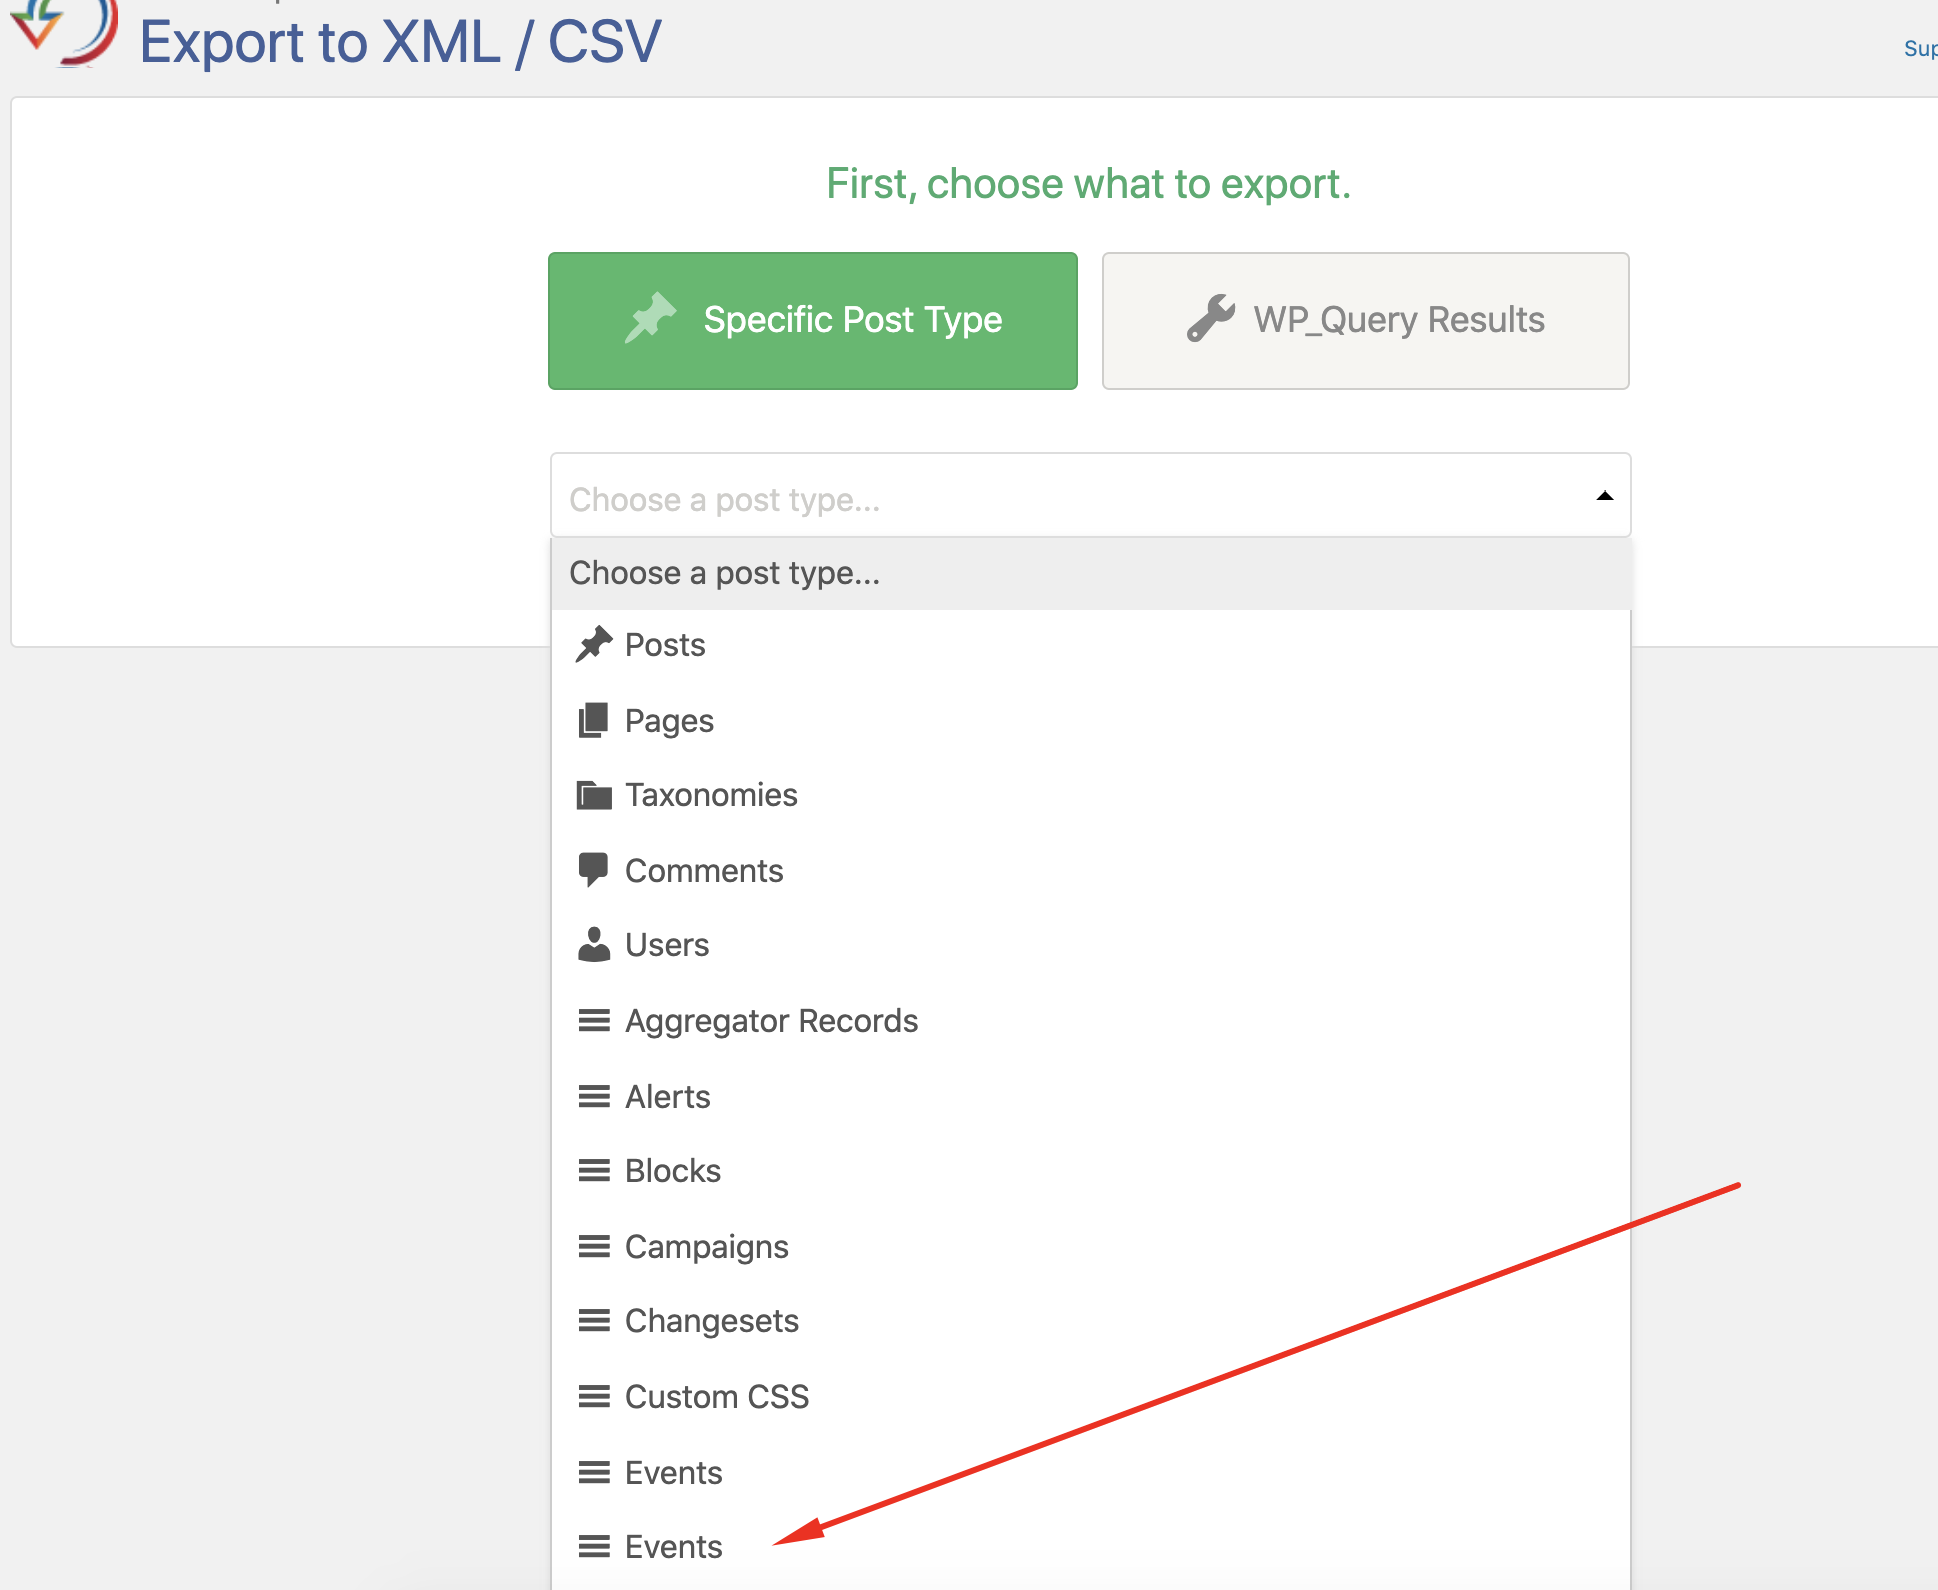 Here is how to export events with WP All Export: export xml/cvs, choose a post type.